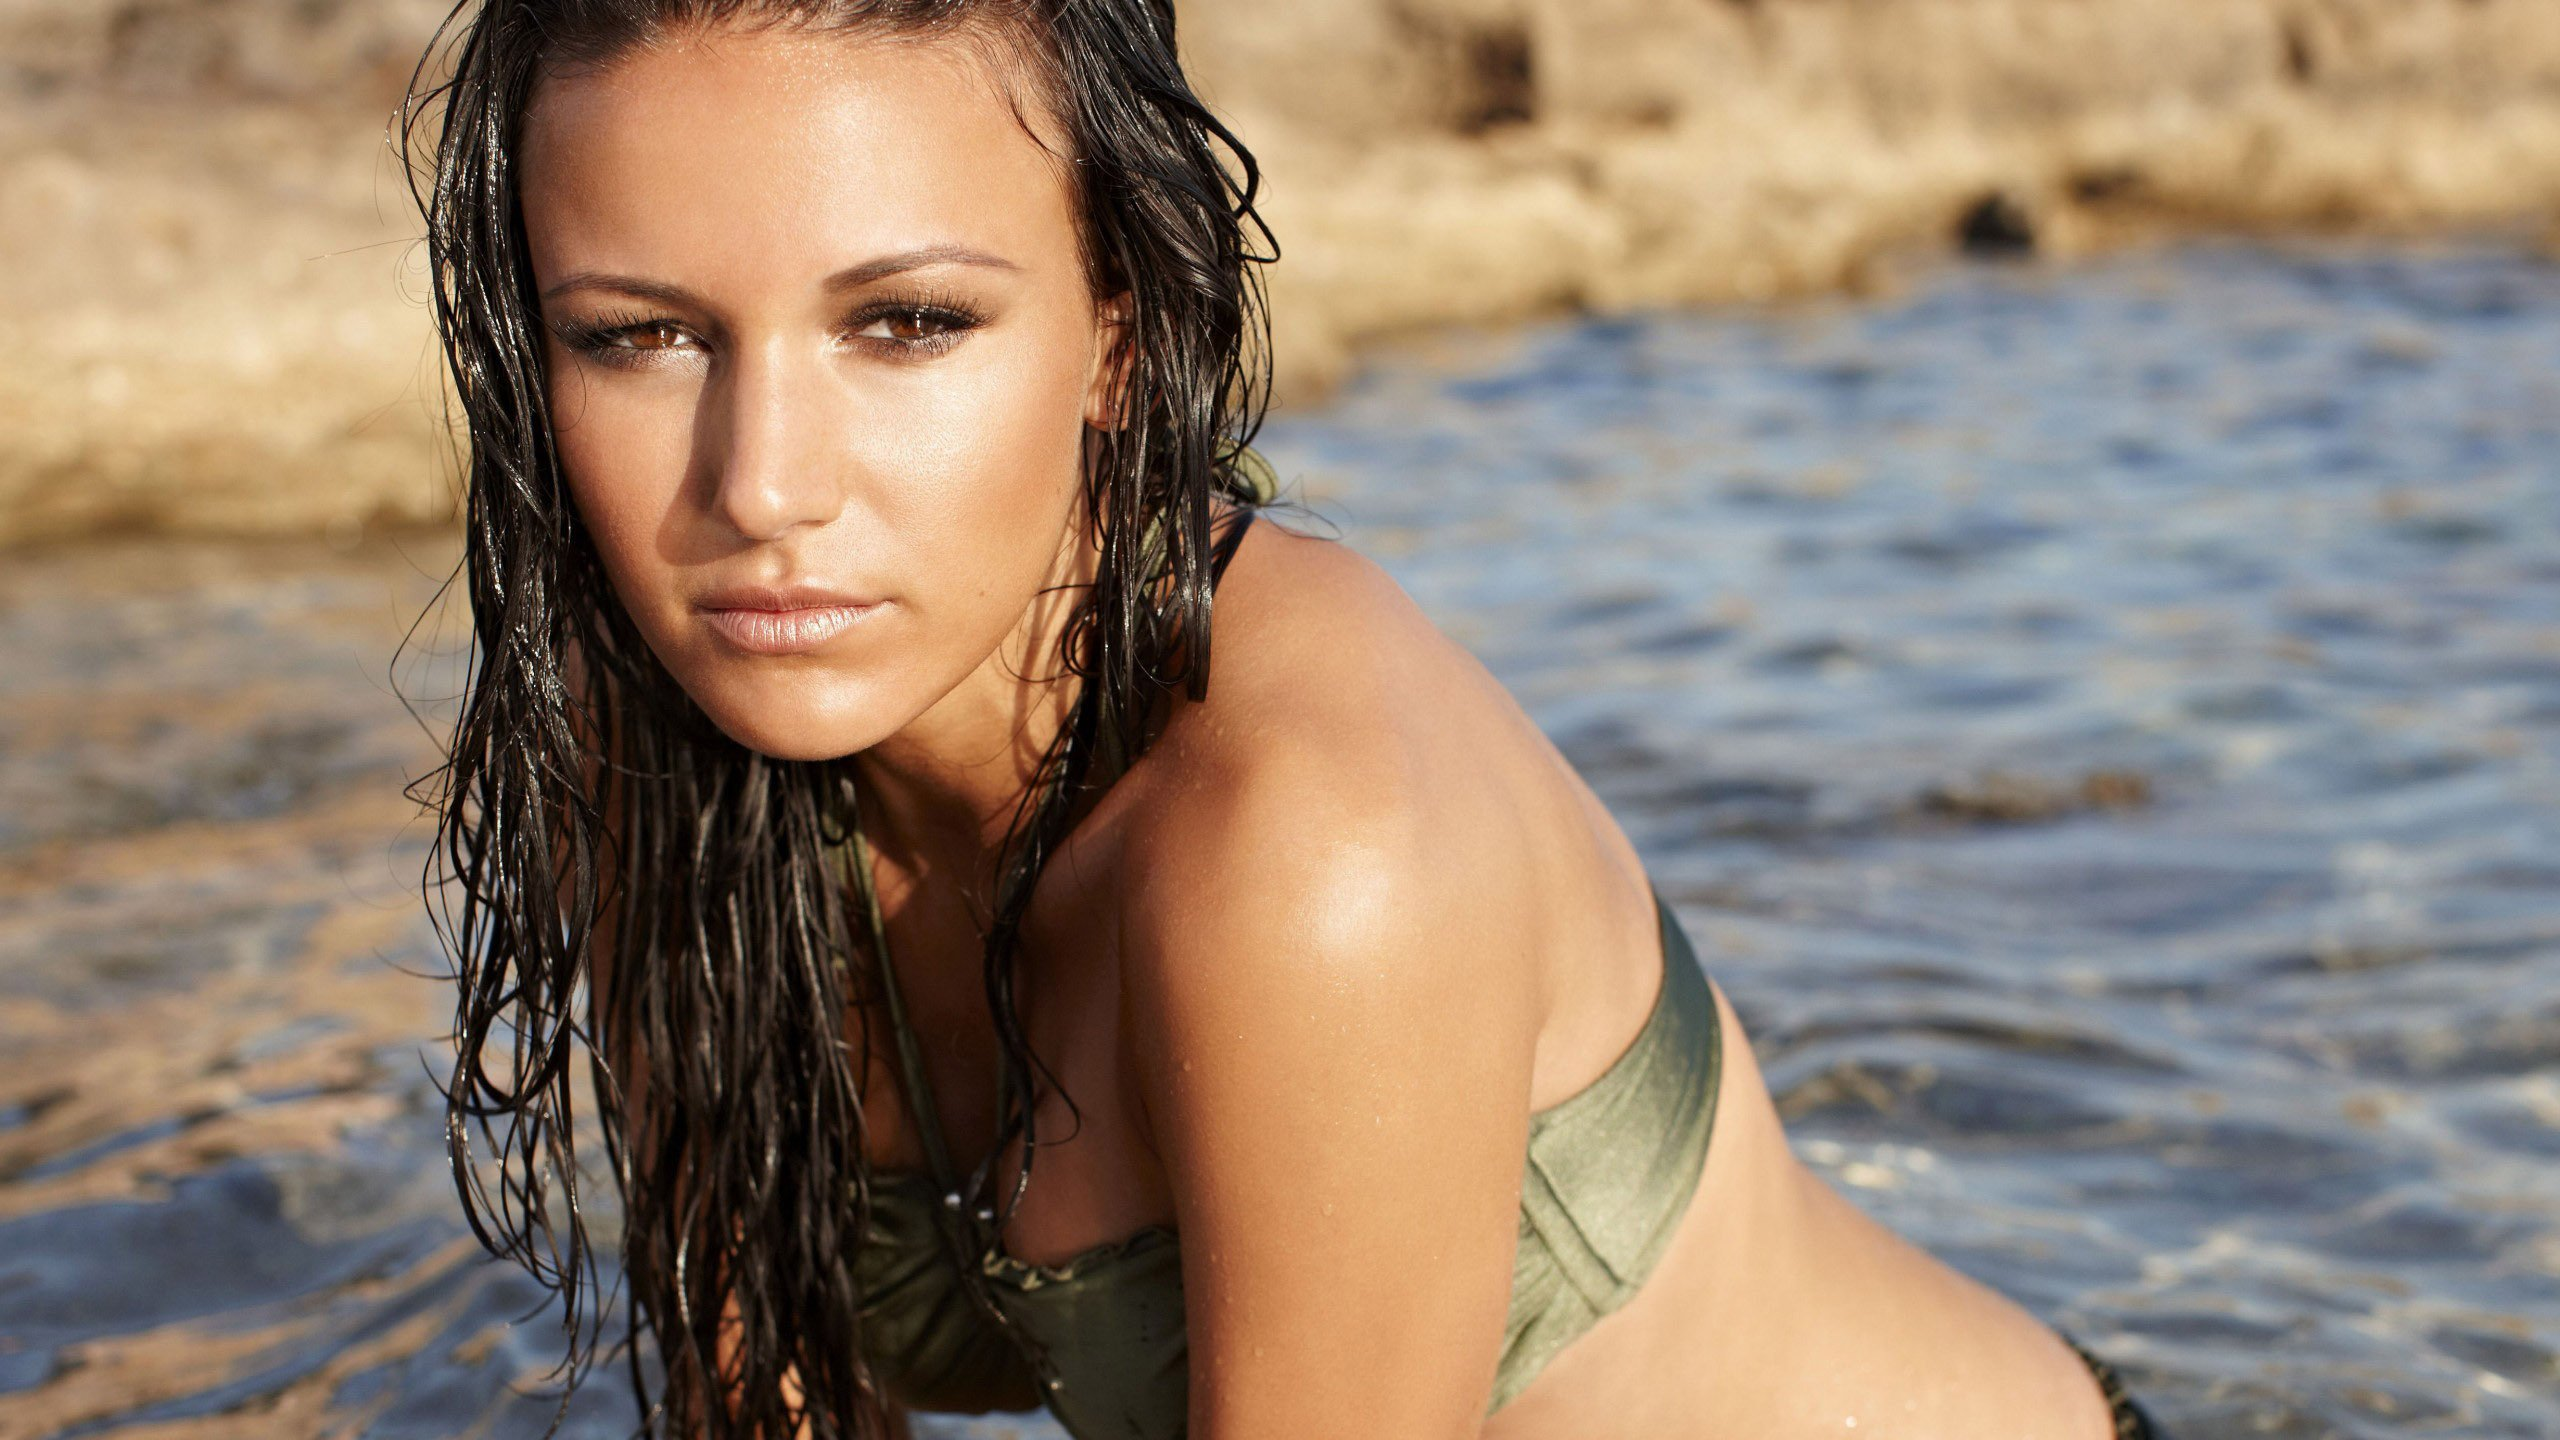 michelle keegan hq wallpapers - photo #35